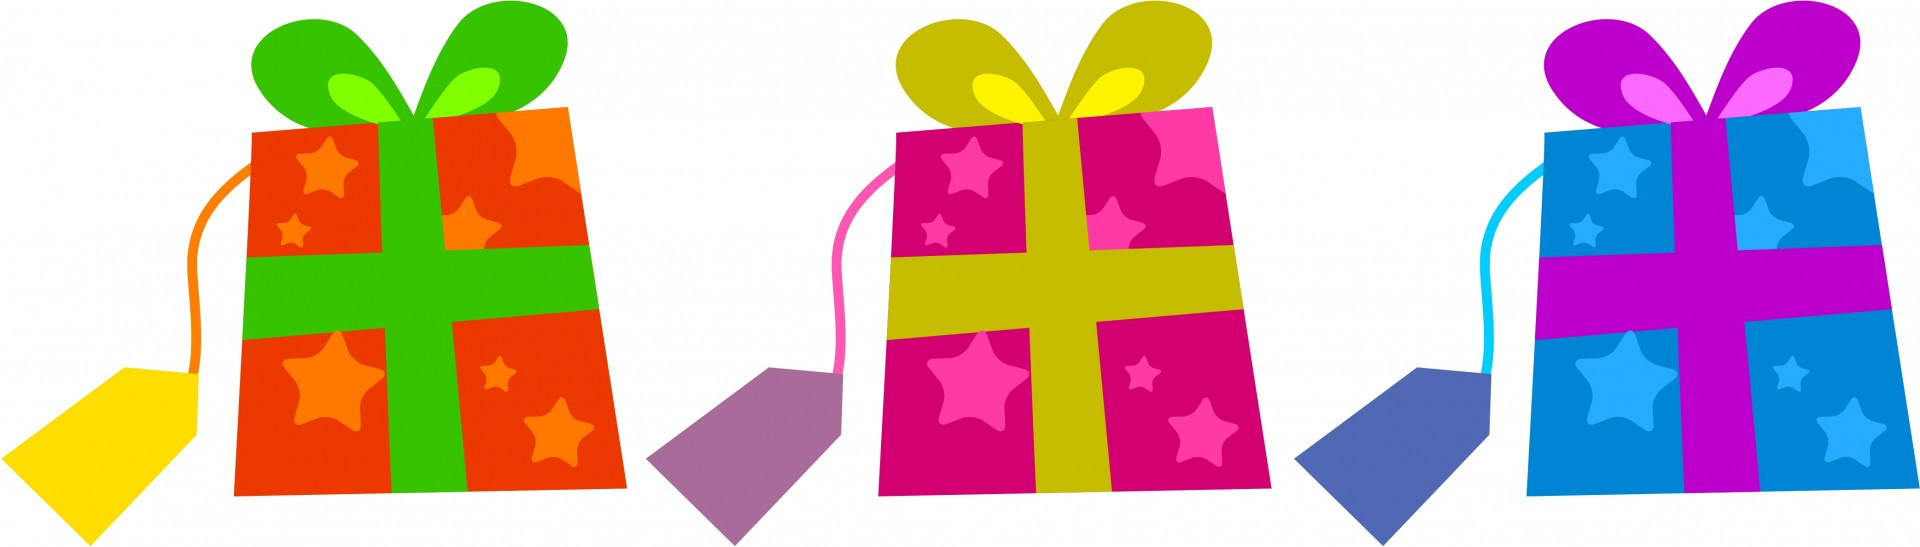 1920x547 Colourful Gifts Clip Art Free Stock Photo